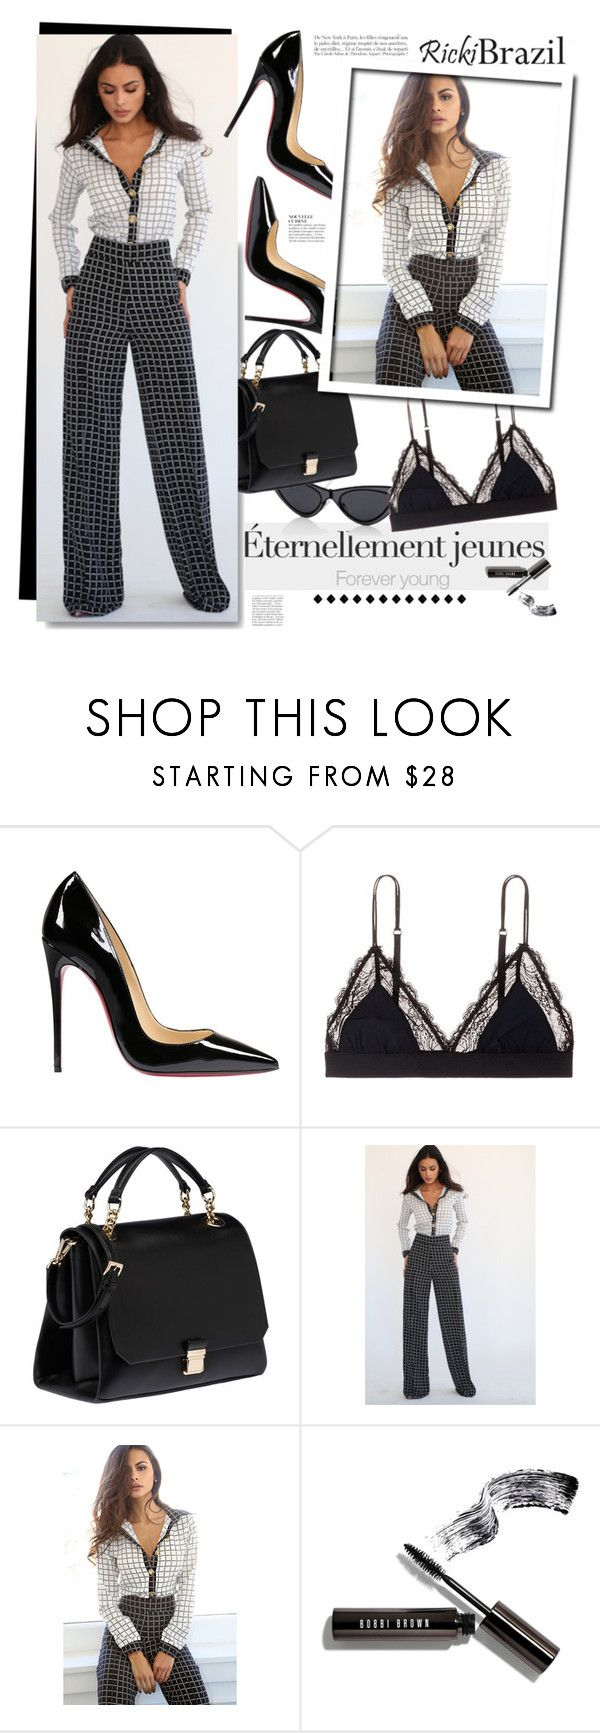 """""""Rickybrazil.com: Eternellement jeunes!"""" by hamaly ❤ liked on Polyvore featuring Dries Van Noten, Christian Louboutin, LoveStories, Miu Miu, Bobbi Brown Cosmetics, Anja, ootd, blouse, pants and rickibrazil"""